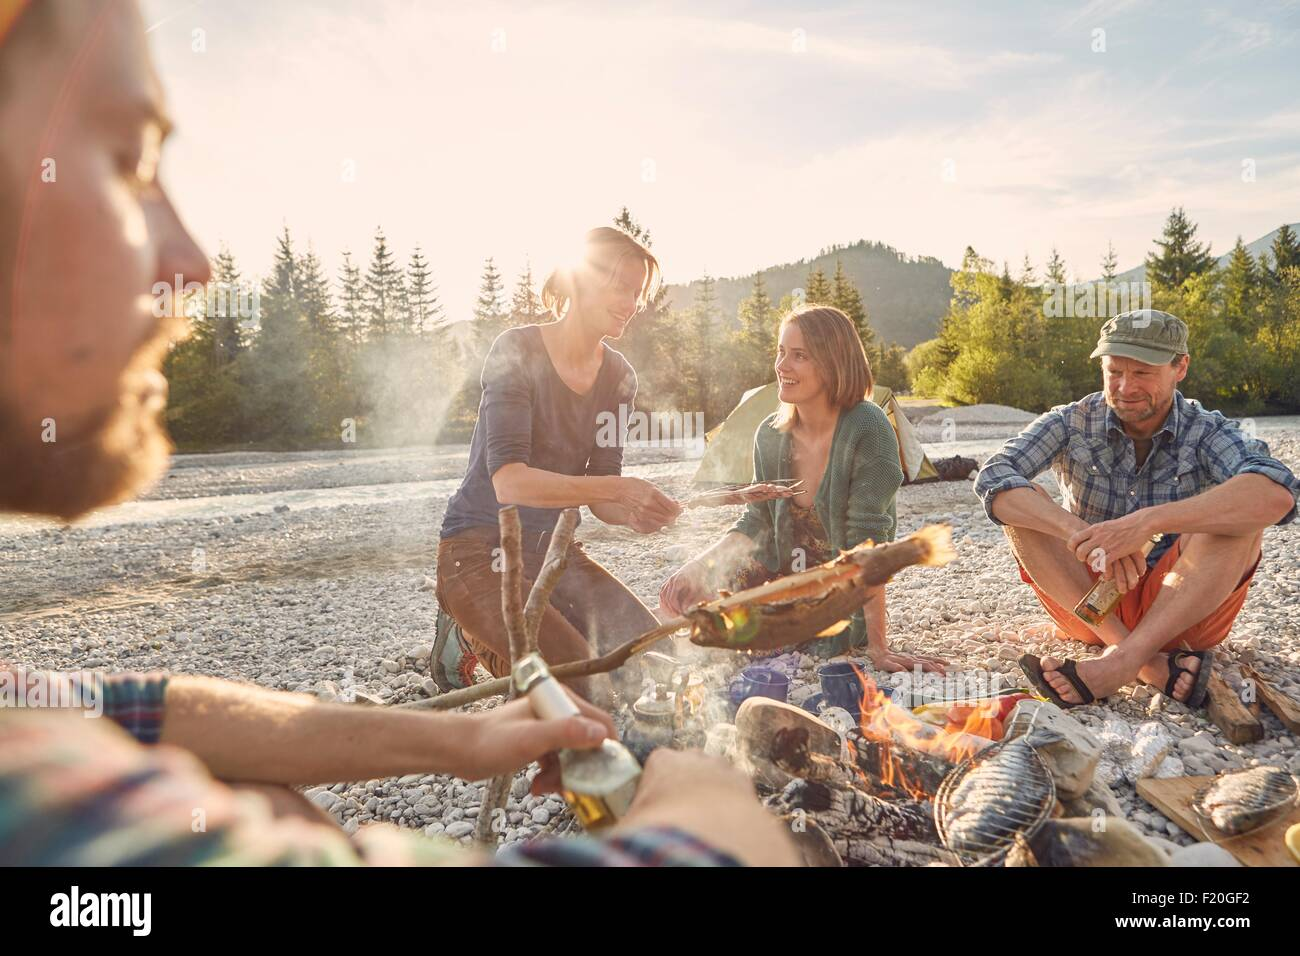 Adults sitting around campfire cooking fish - Stock Image